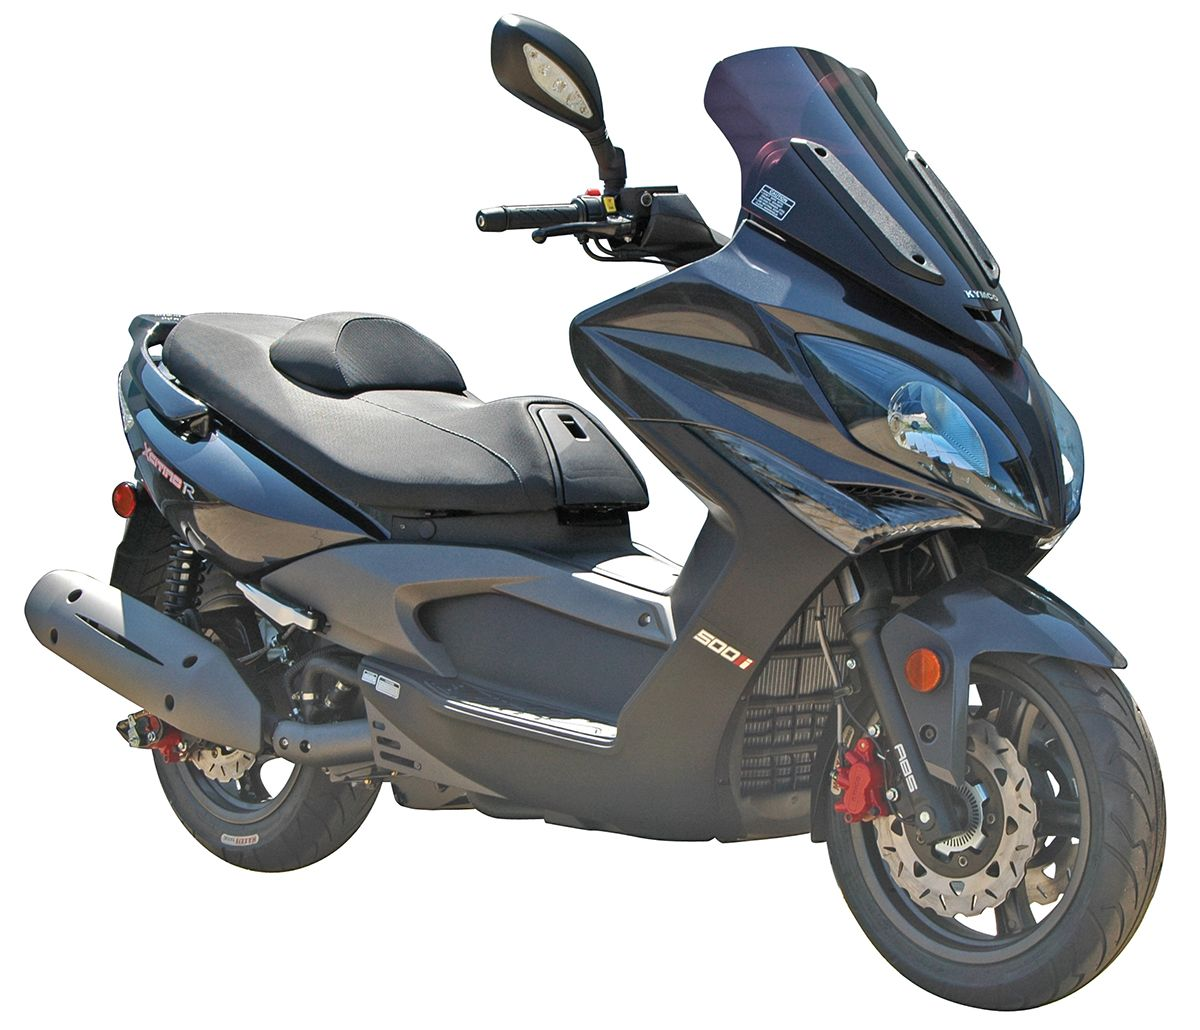 2016 Kymco Xciting 500 Ri ABS in Greensboro, North Carolina